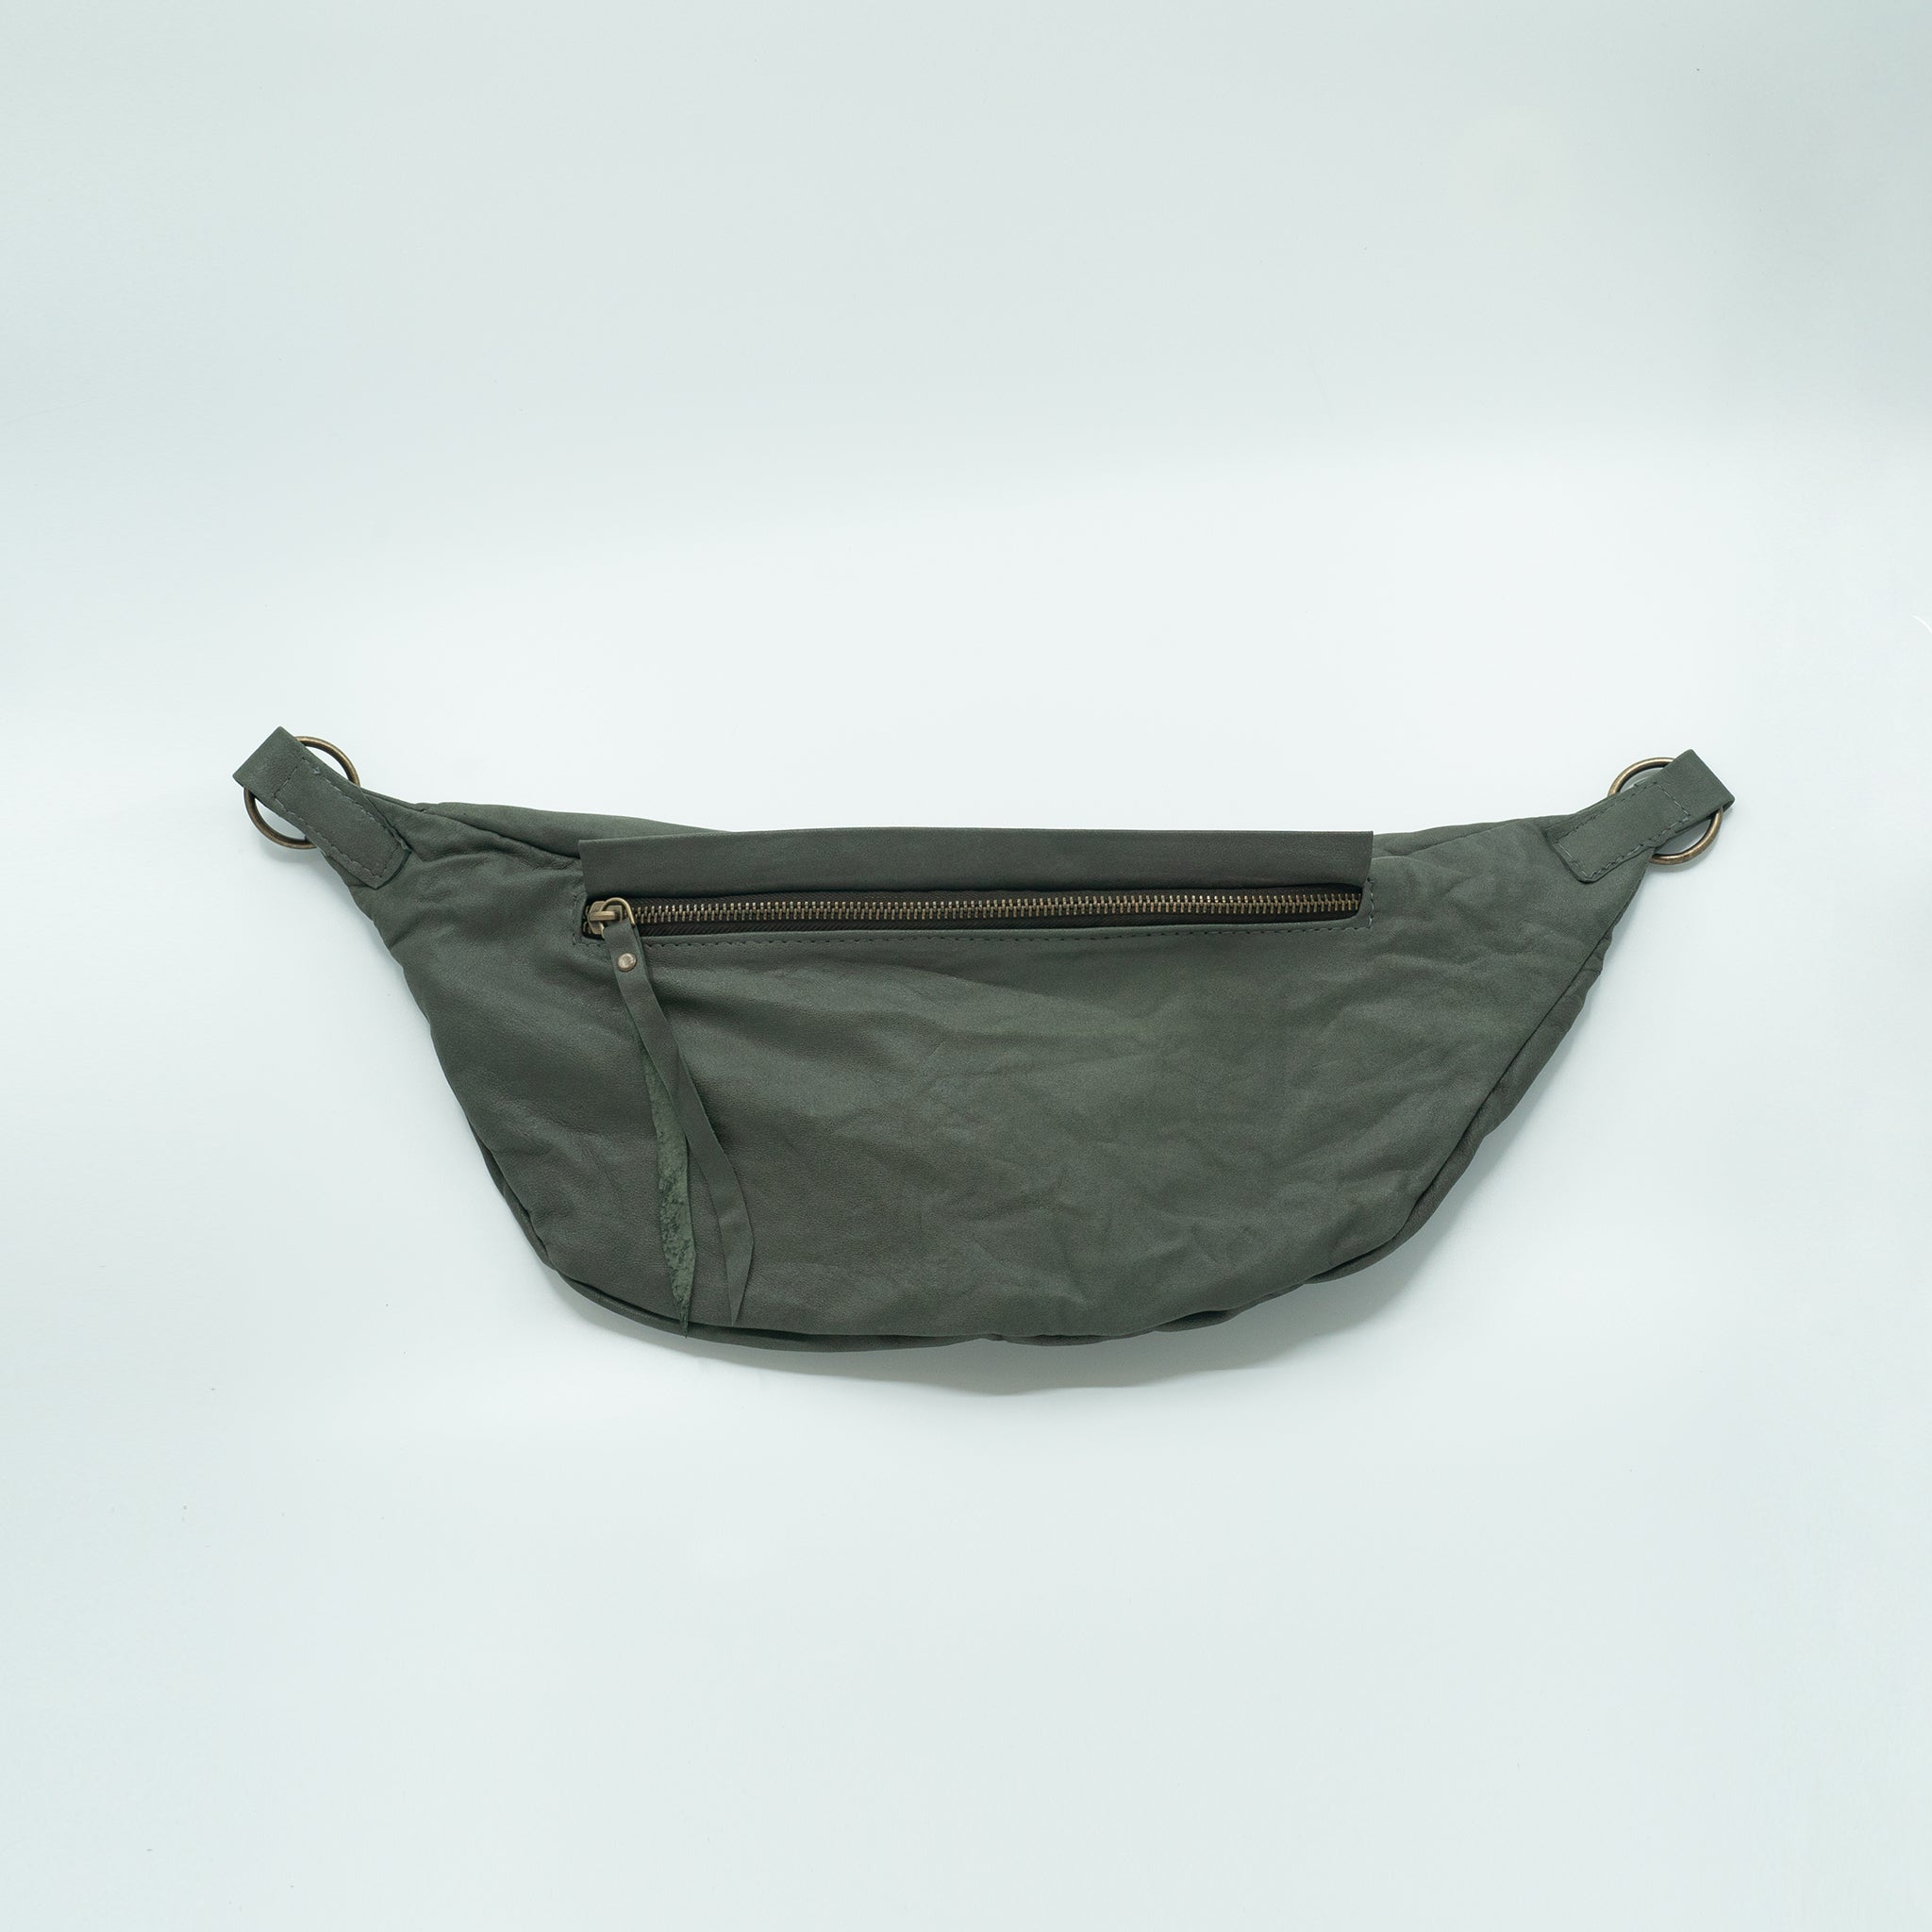 The Everywhere Bag #9 — Dark Olive Green Leather with Brass Hardware